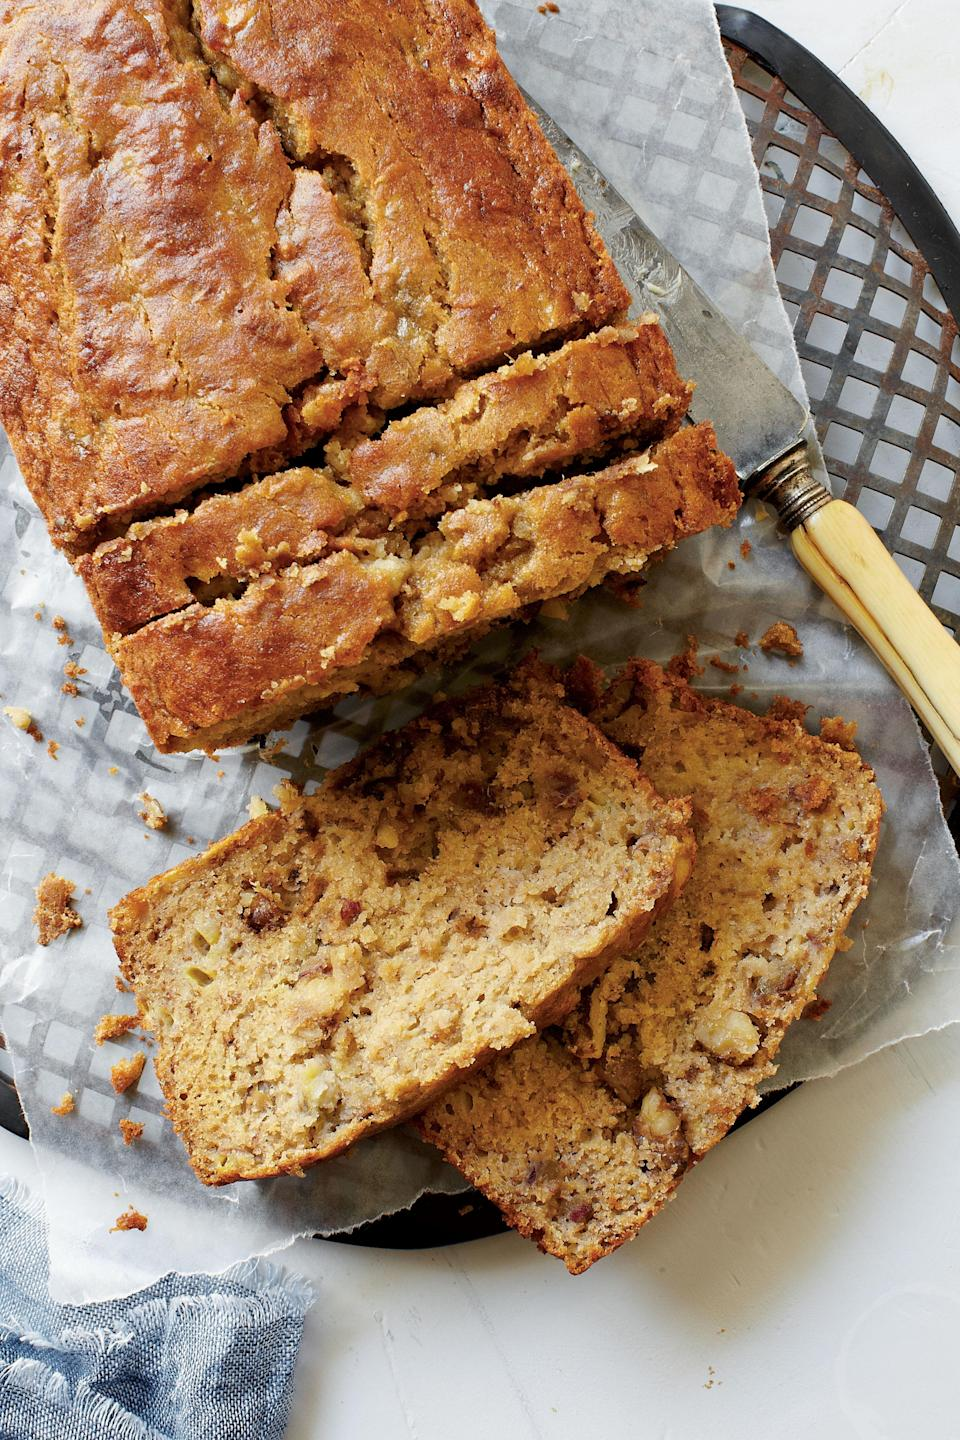 """<p><strong>Recipe:</strong> <a href=""""http://www.myrecipes.com/recipe/gluten-free-banana-bread-50400000125894/"""" rel=""""nofollow noopener"""" target=""""_blank"""" data-ylk=""""slk:Gluten-Free Banana Bread"""" class=""""link rapid-noclick-resp""""><strong>Gluten-Free Banana Bread</strong></a></p> <p>Brown rice flour and sorghum flour (in the organic section of supermarkets) make a bread so tender, you won't believe it's gluten-free. For best results, use a light-colored pan. Or, turn your dark pan into a shiny one by wrapping the outside of it with heavy-duty aluminum foil.</p>"""